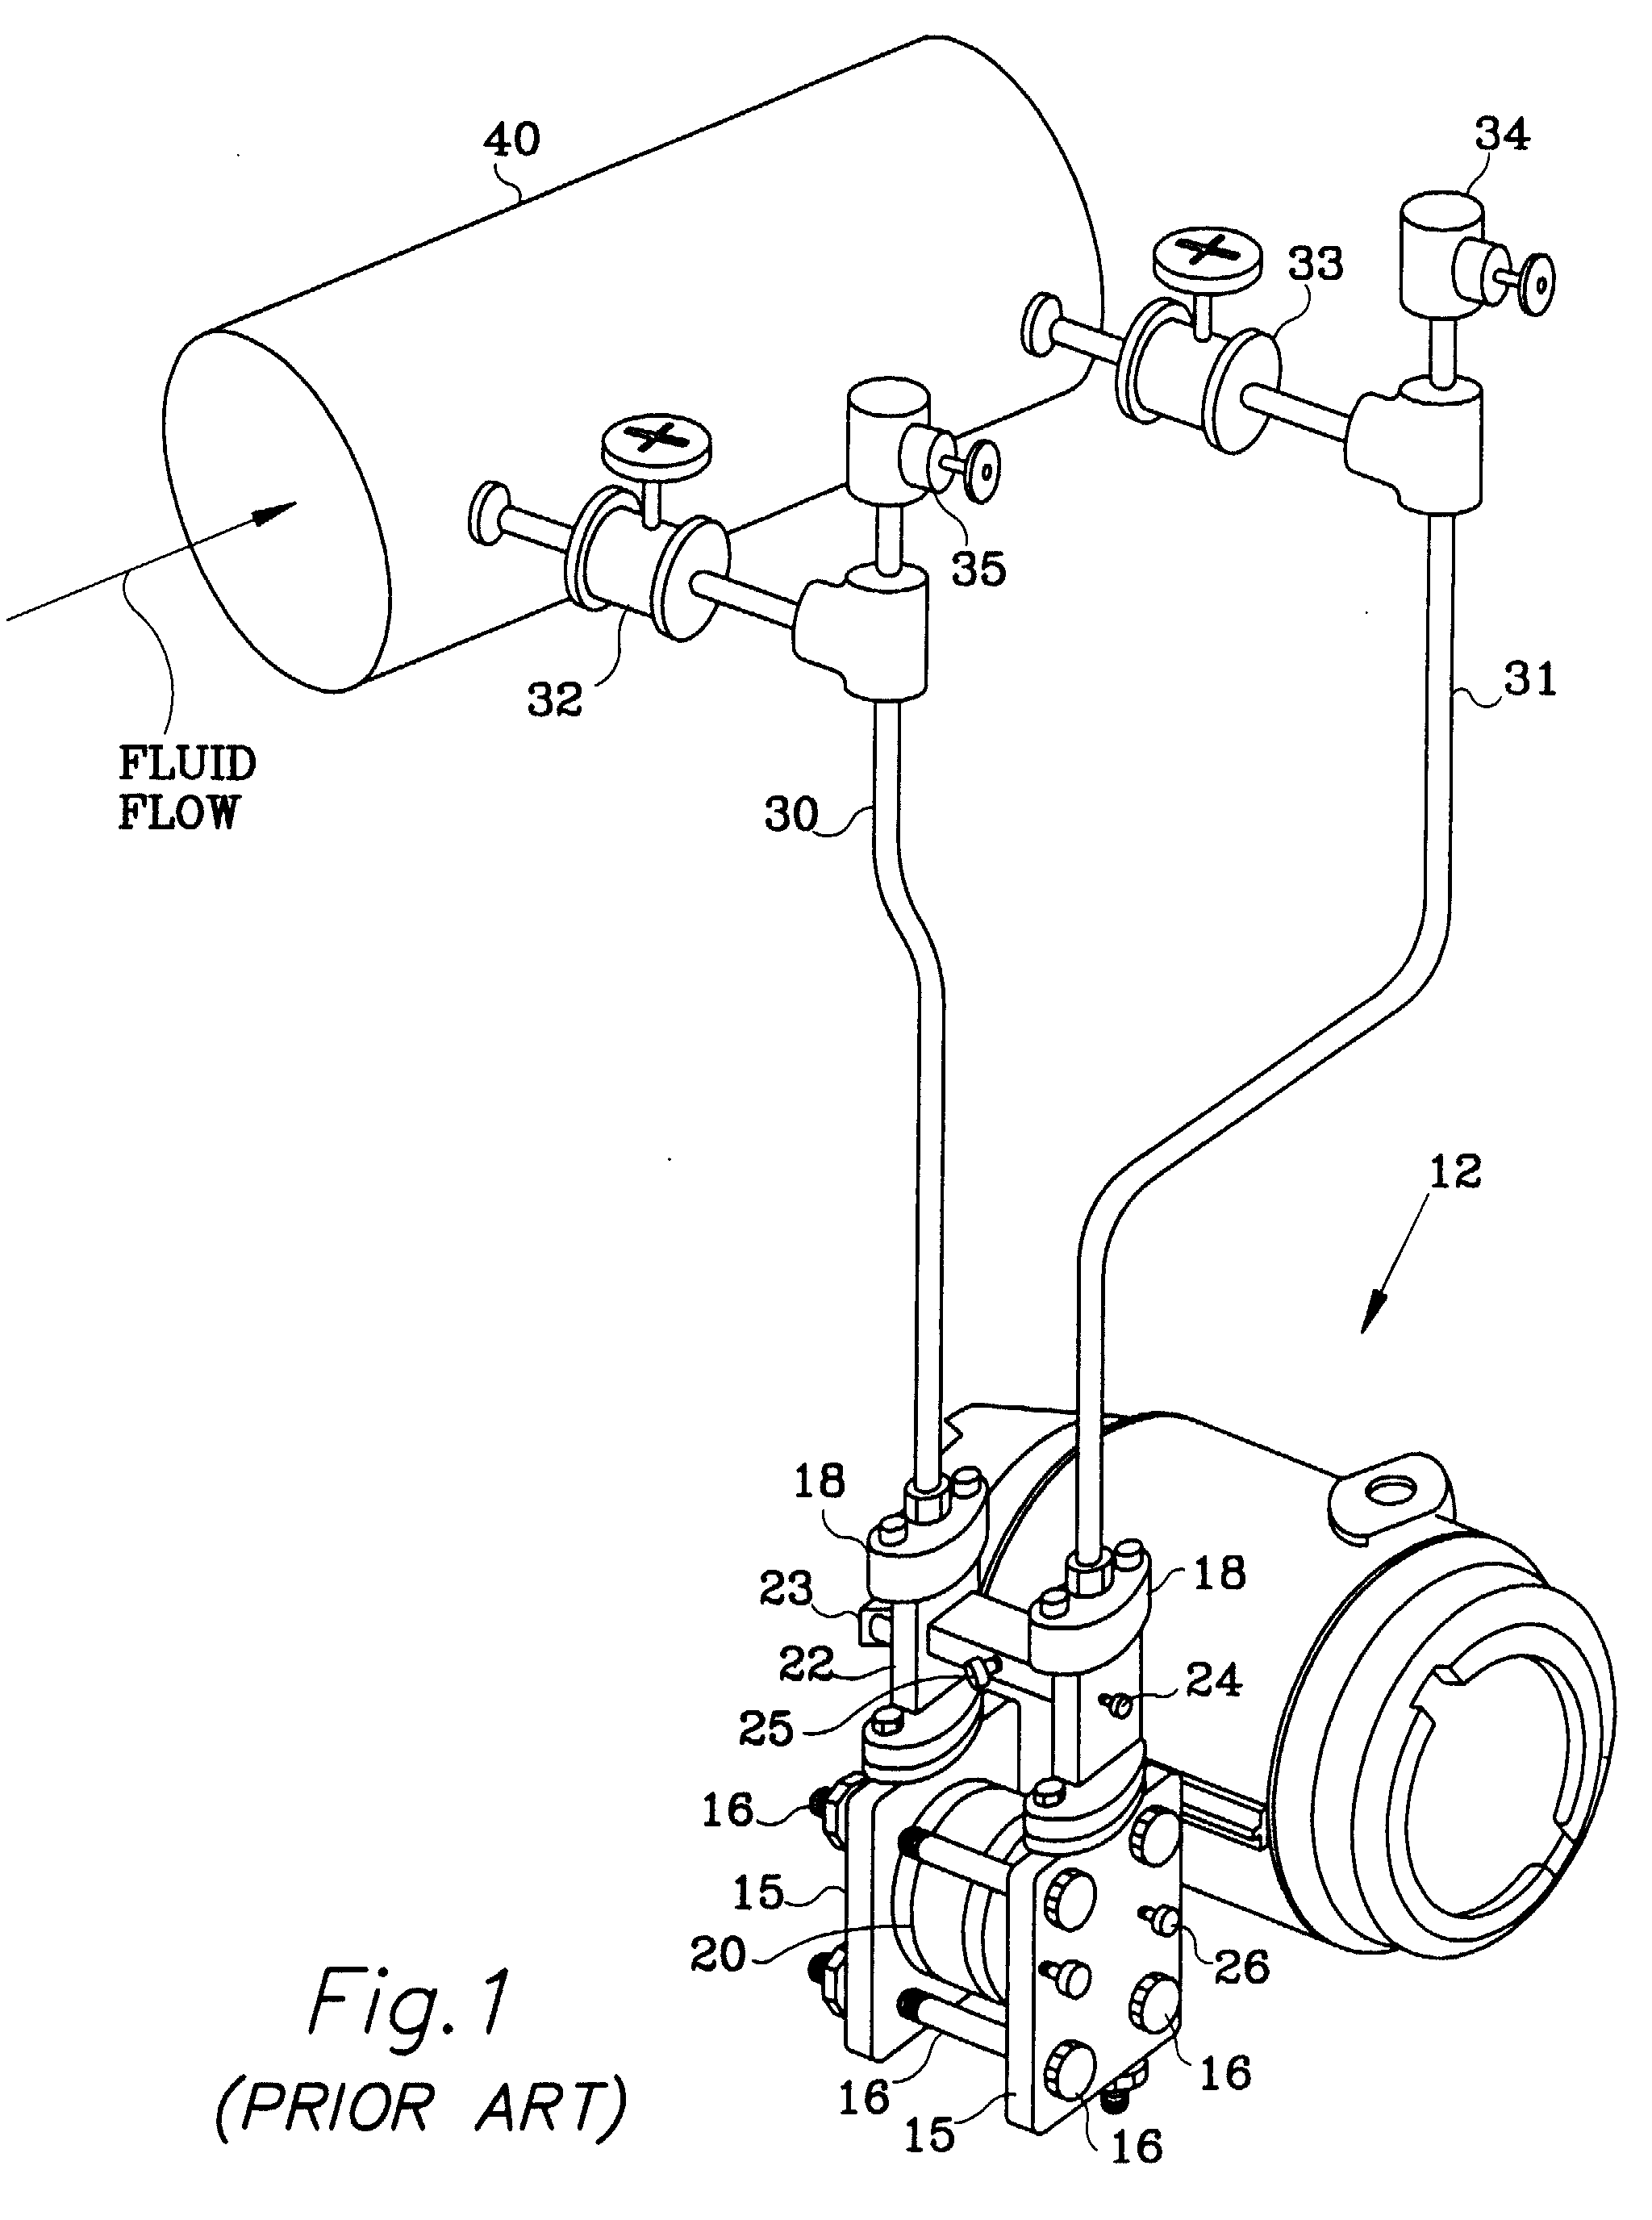 installation drawing at getdrawings free for personal use Wiring a 400 Amp Service 2048x2752 pressure transmitter hook up drawing diagrams for understanding